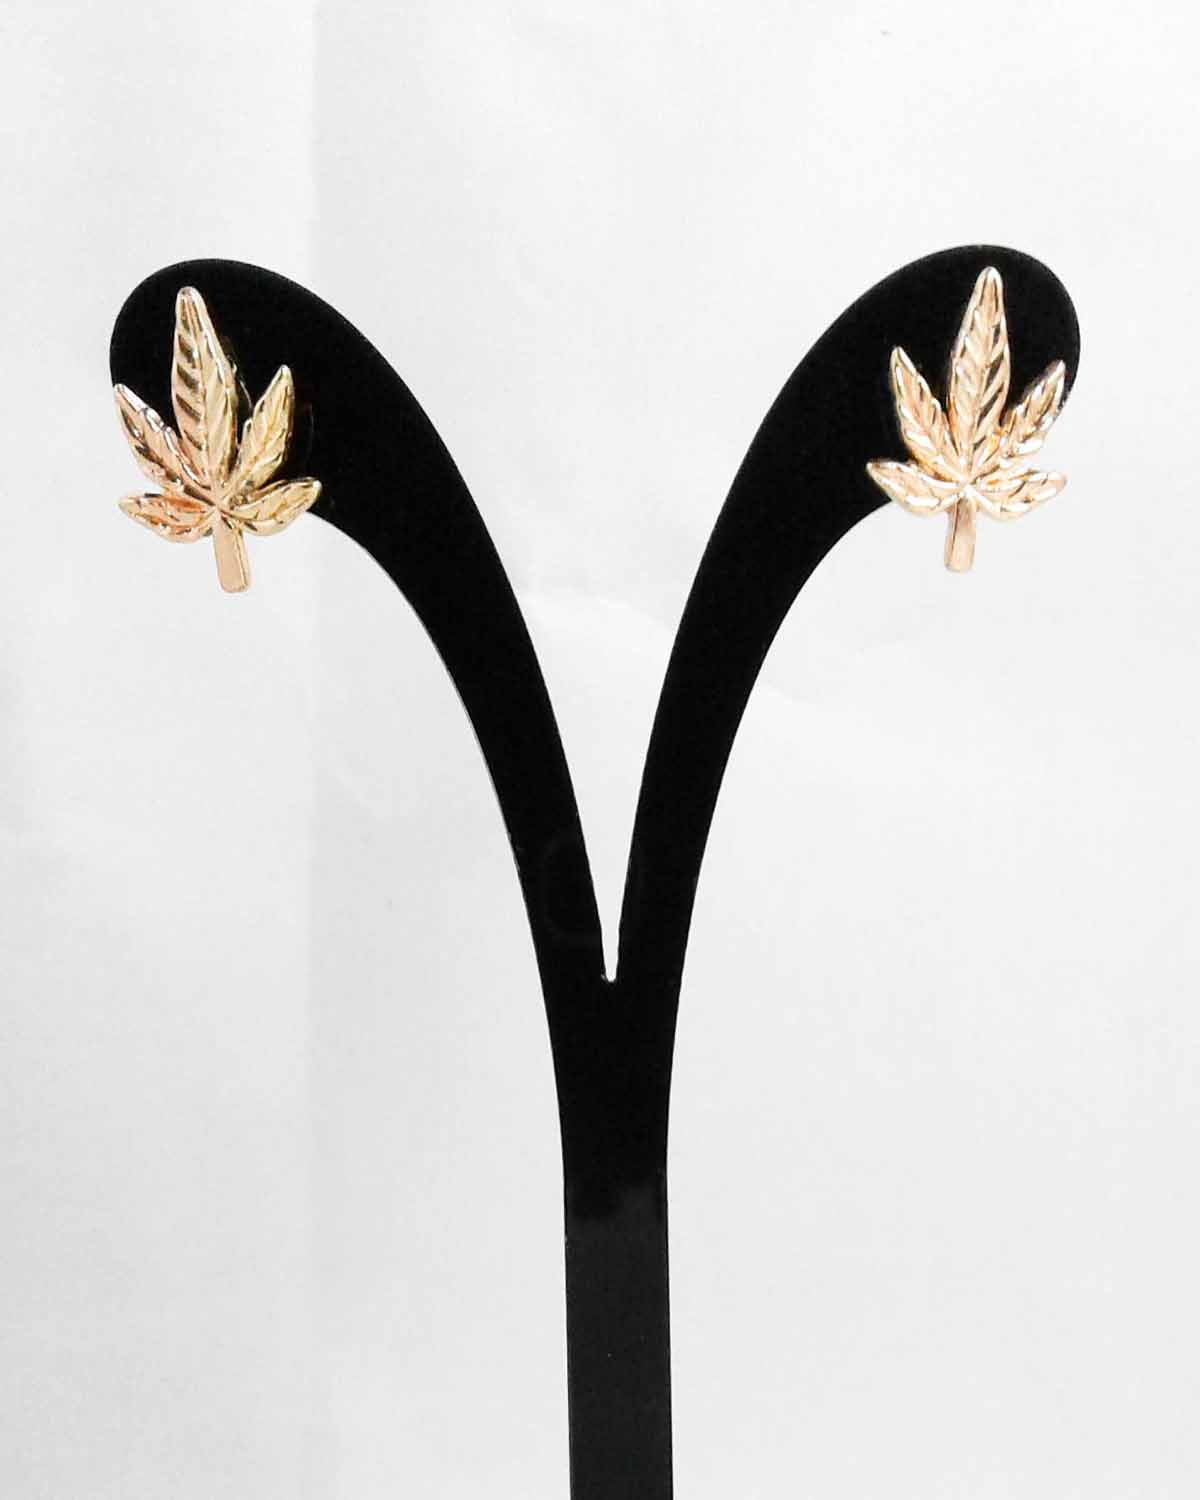 GoldTone Cannabis Leaf Stud Earrings